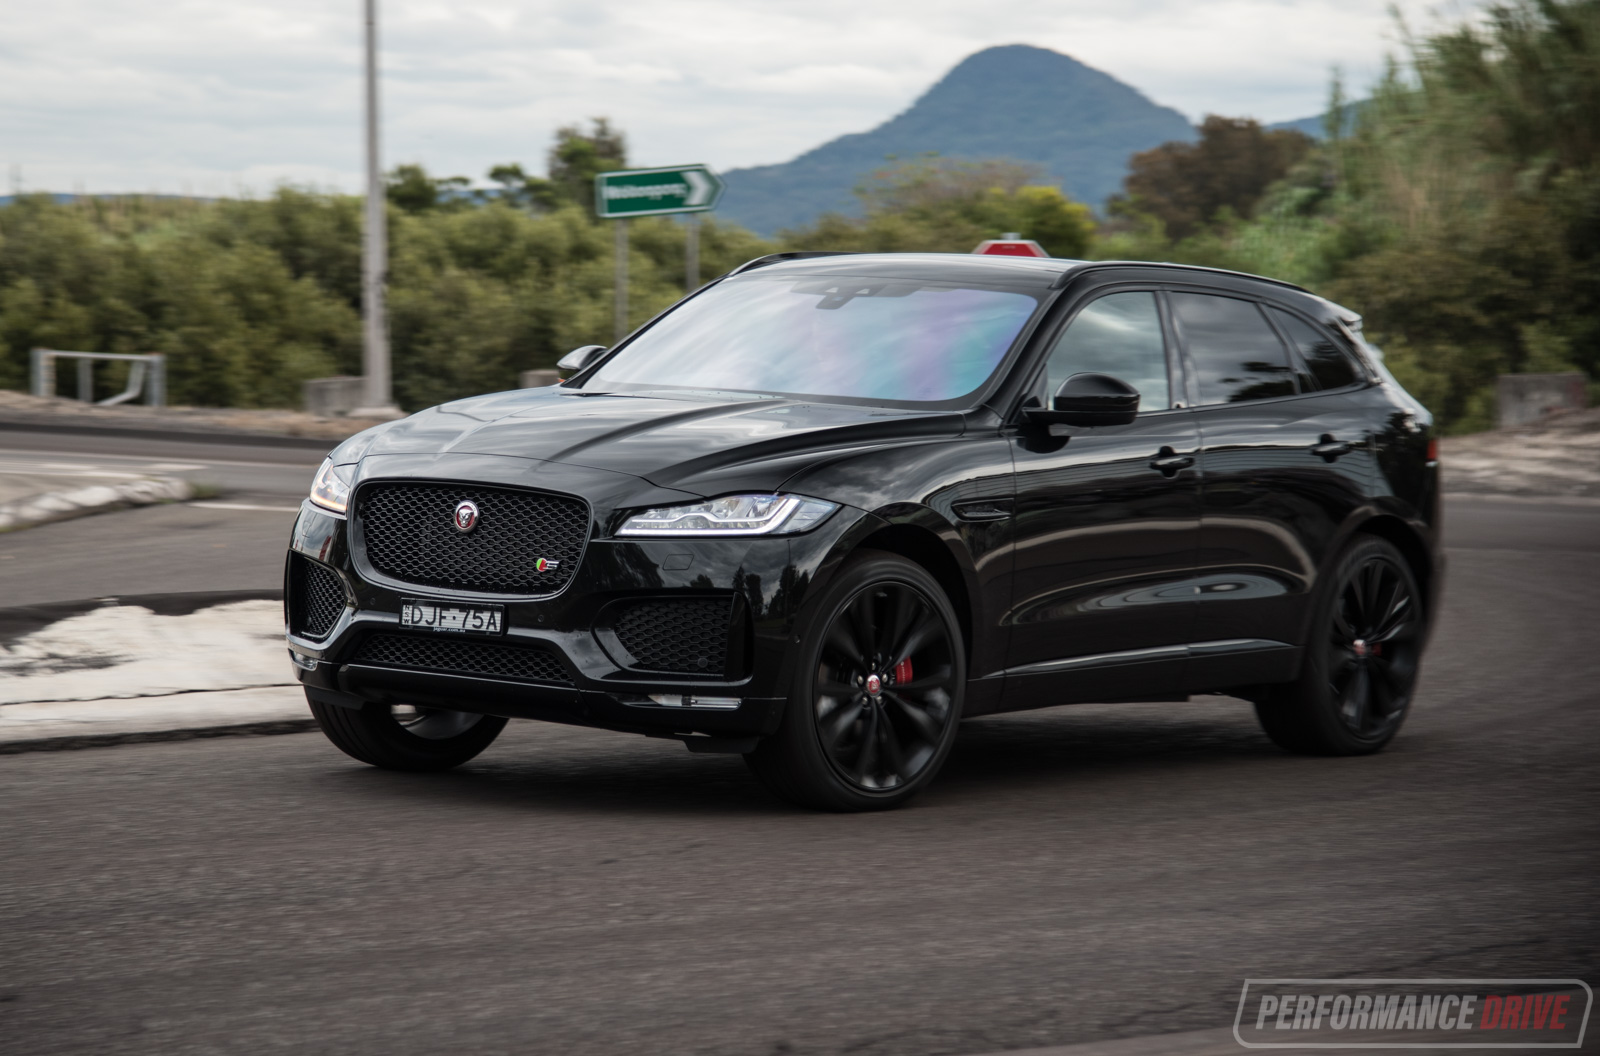 2016 jaguar f pace s 35t review video performancedrive. Black Bedroom Furniture Sets. Home Design Ideas